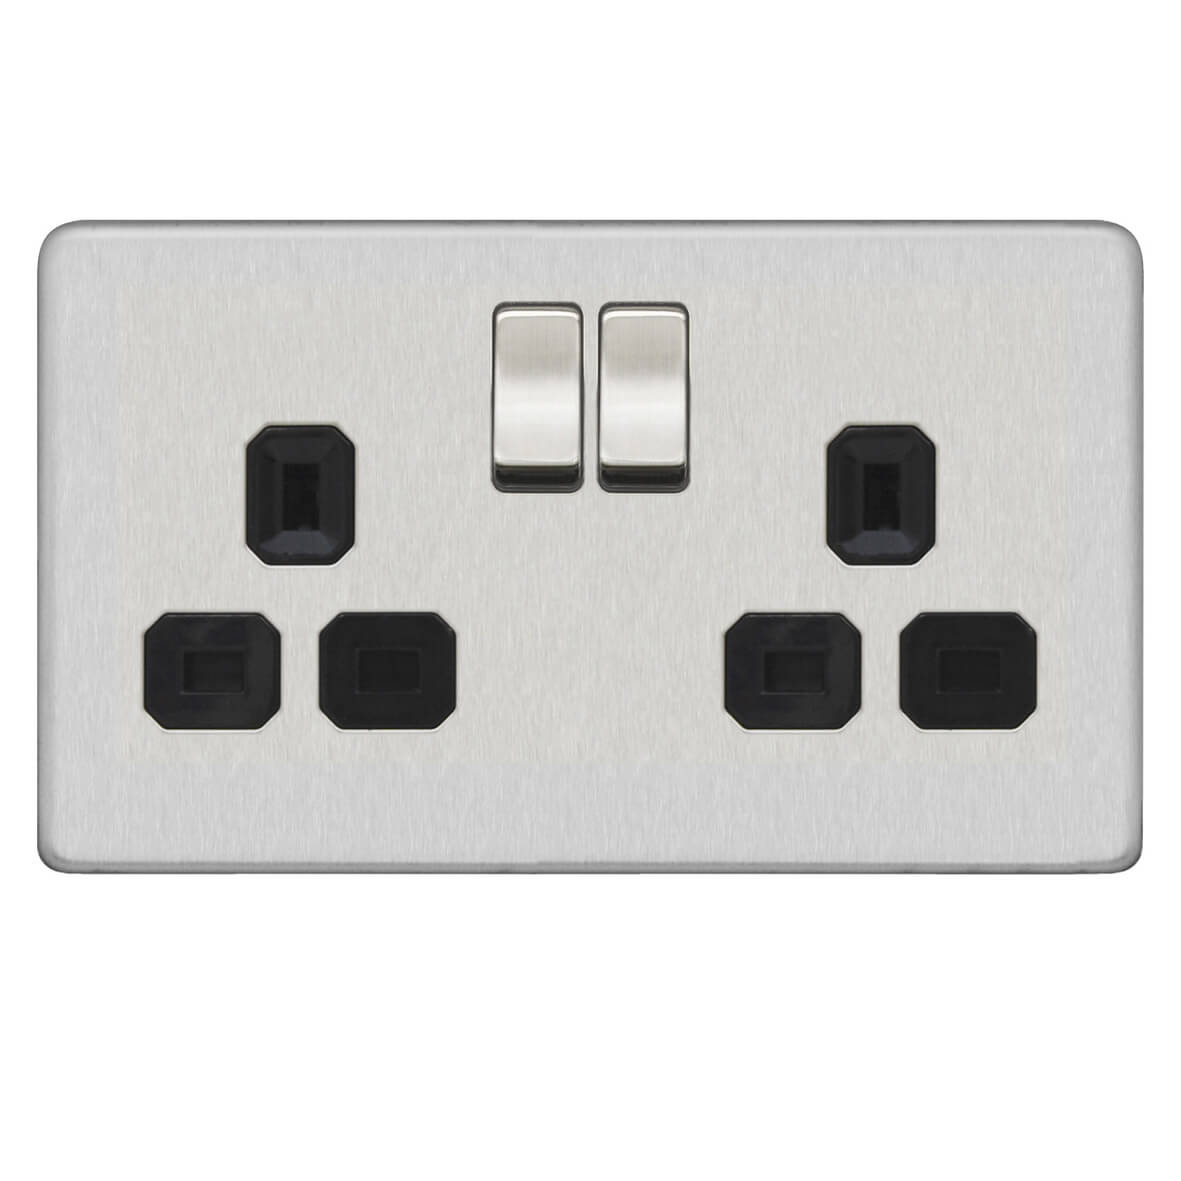 2G Double Schuko Electrical Euro Power Socket Screw Less Plate Antique Brass